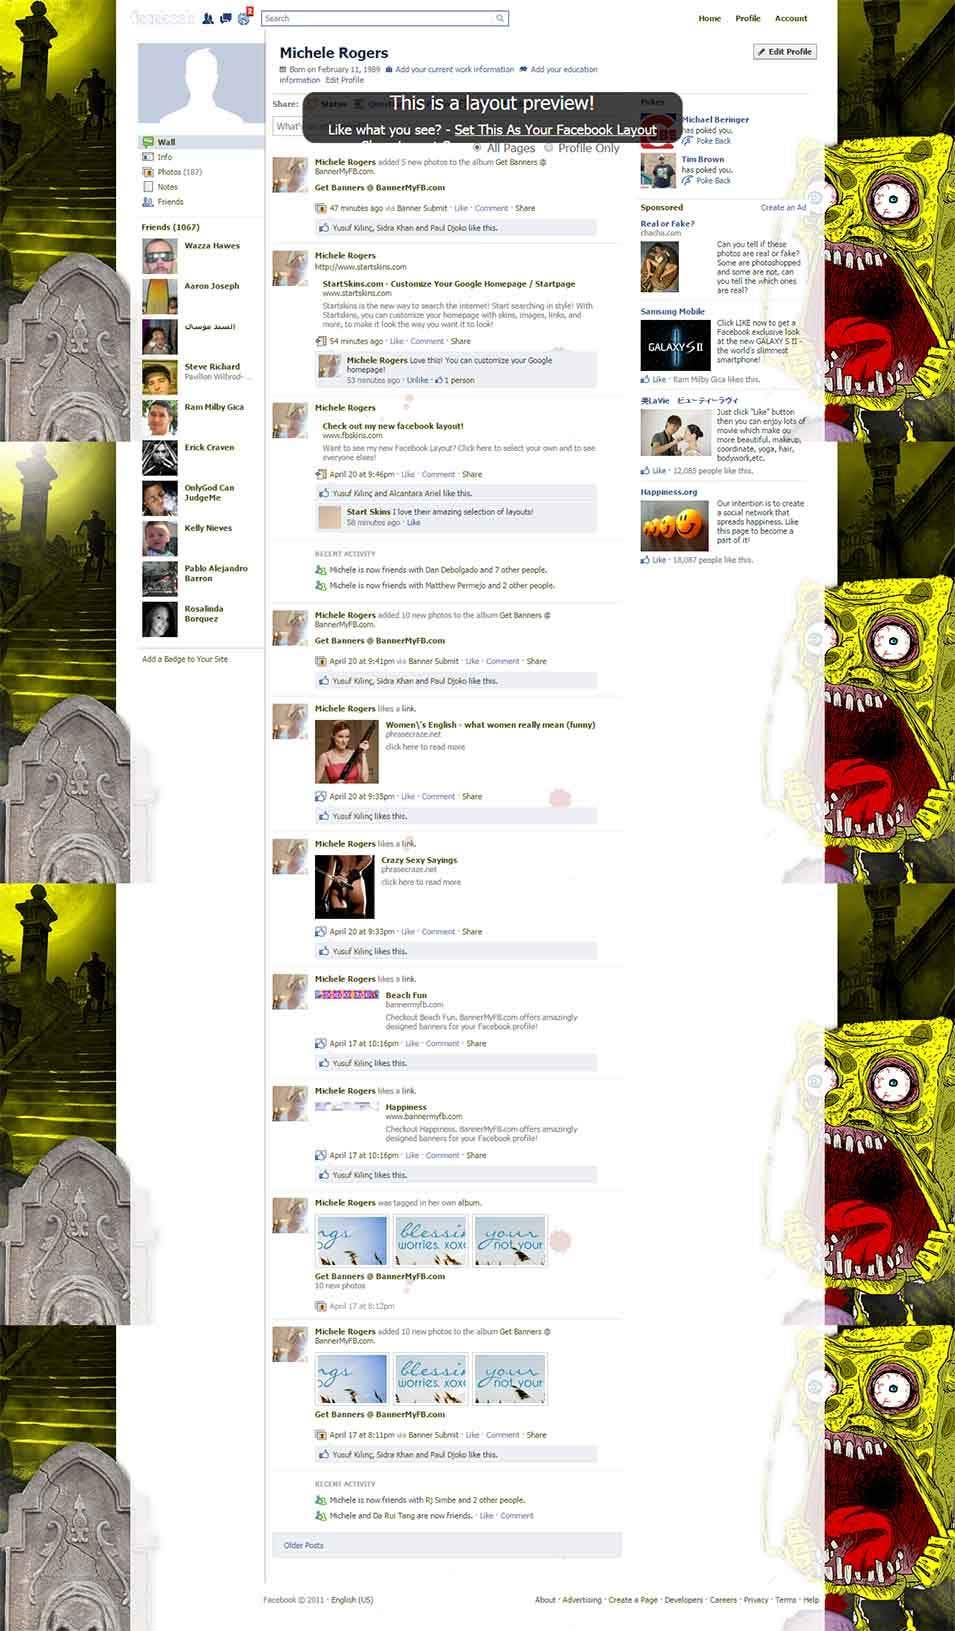 spongebob scarypants animated grave facebook layout preview